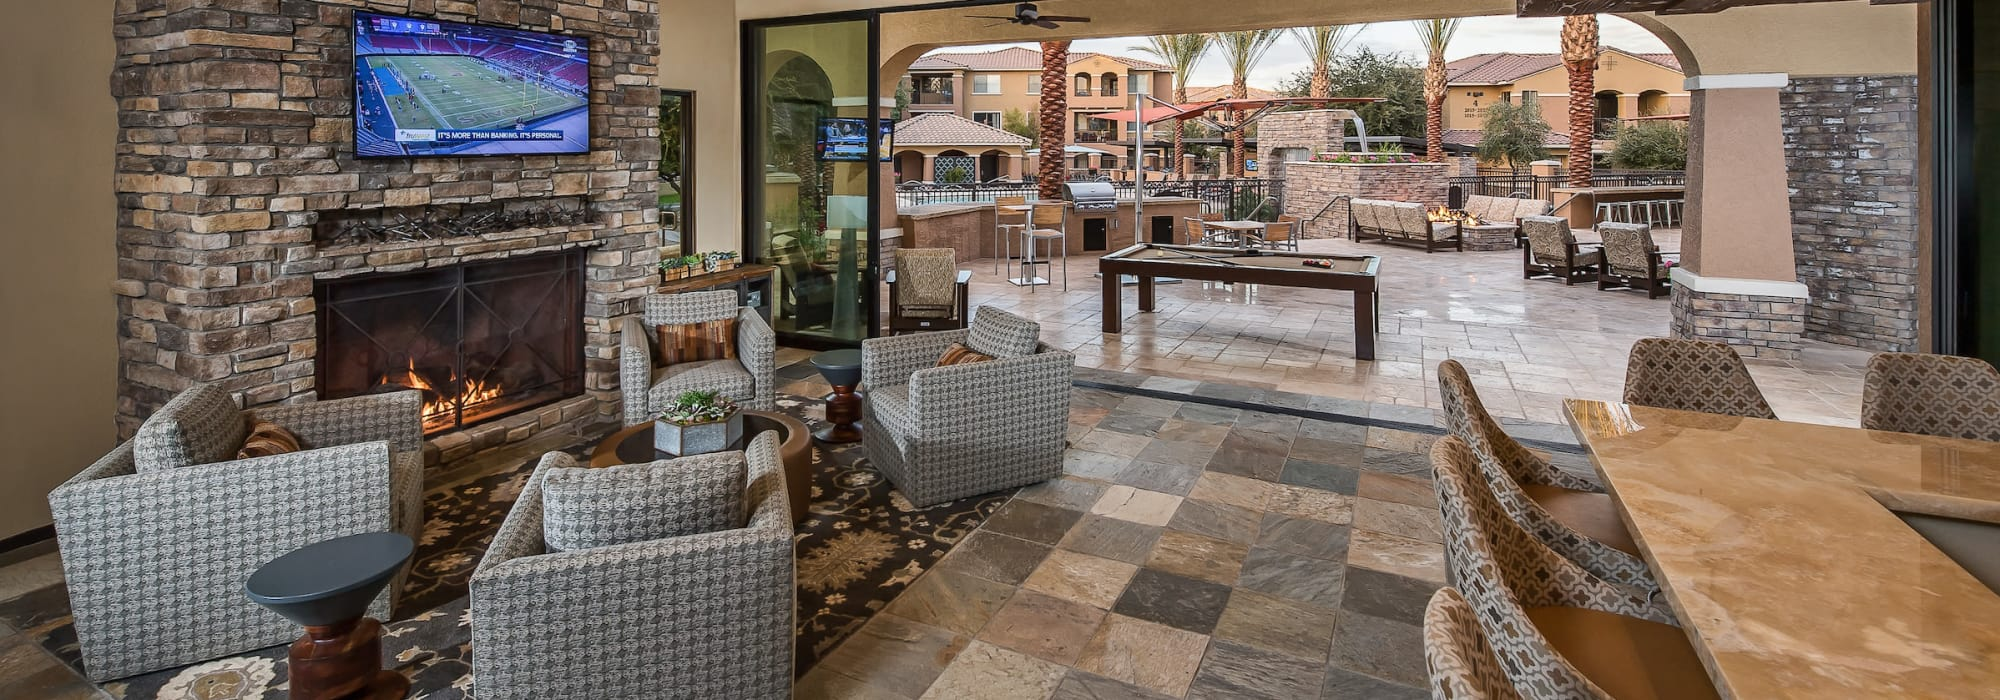 Spacious clubhouse to entertain friends and family at Stone Oaks in Chandler, Arizona